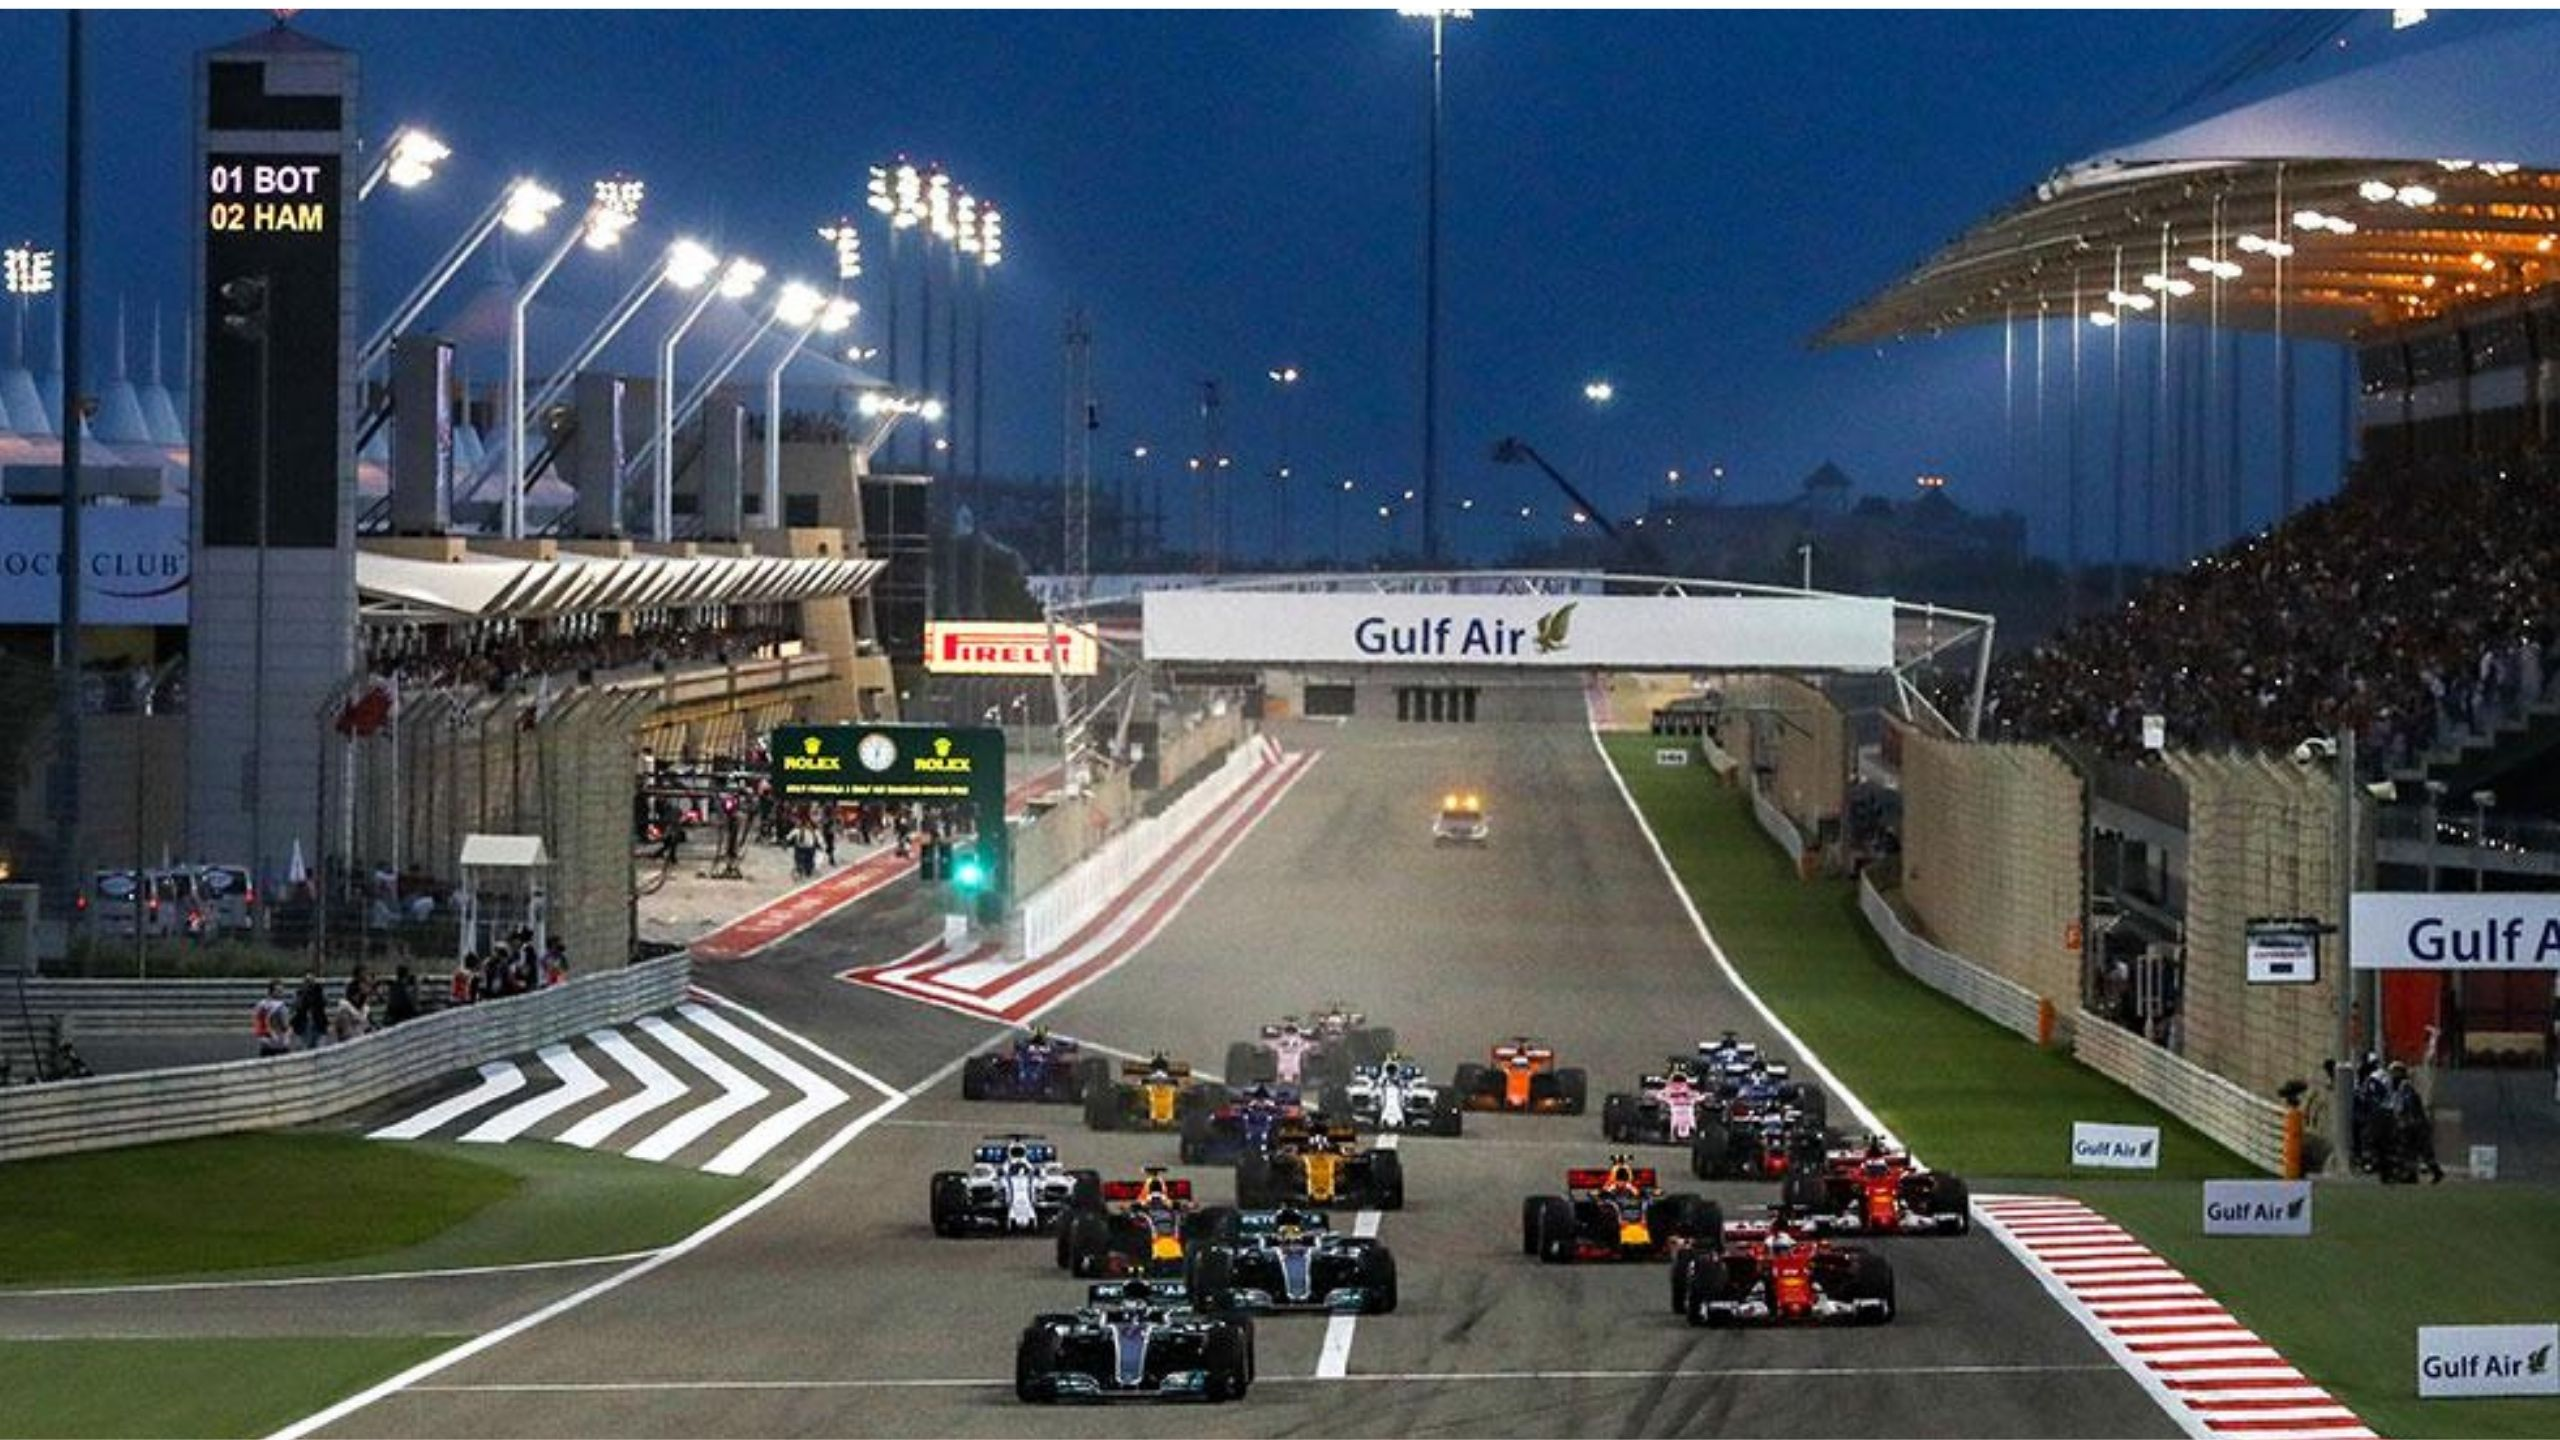 F1 Live Stream Bahrain GP 2020, Start Time & Broadcast Channel: When and Where to watch F1 Free Practice, Qualifying and Race held at Sakhir?